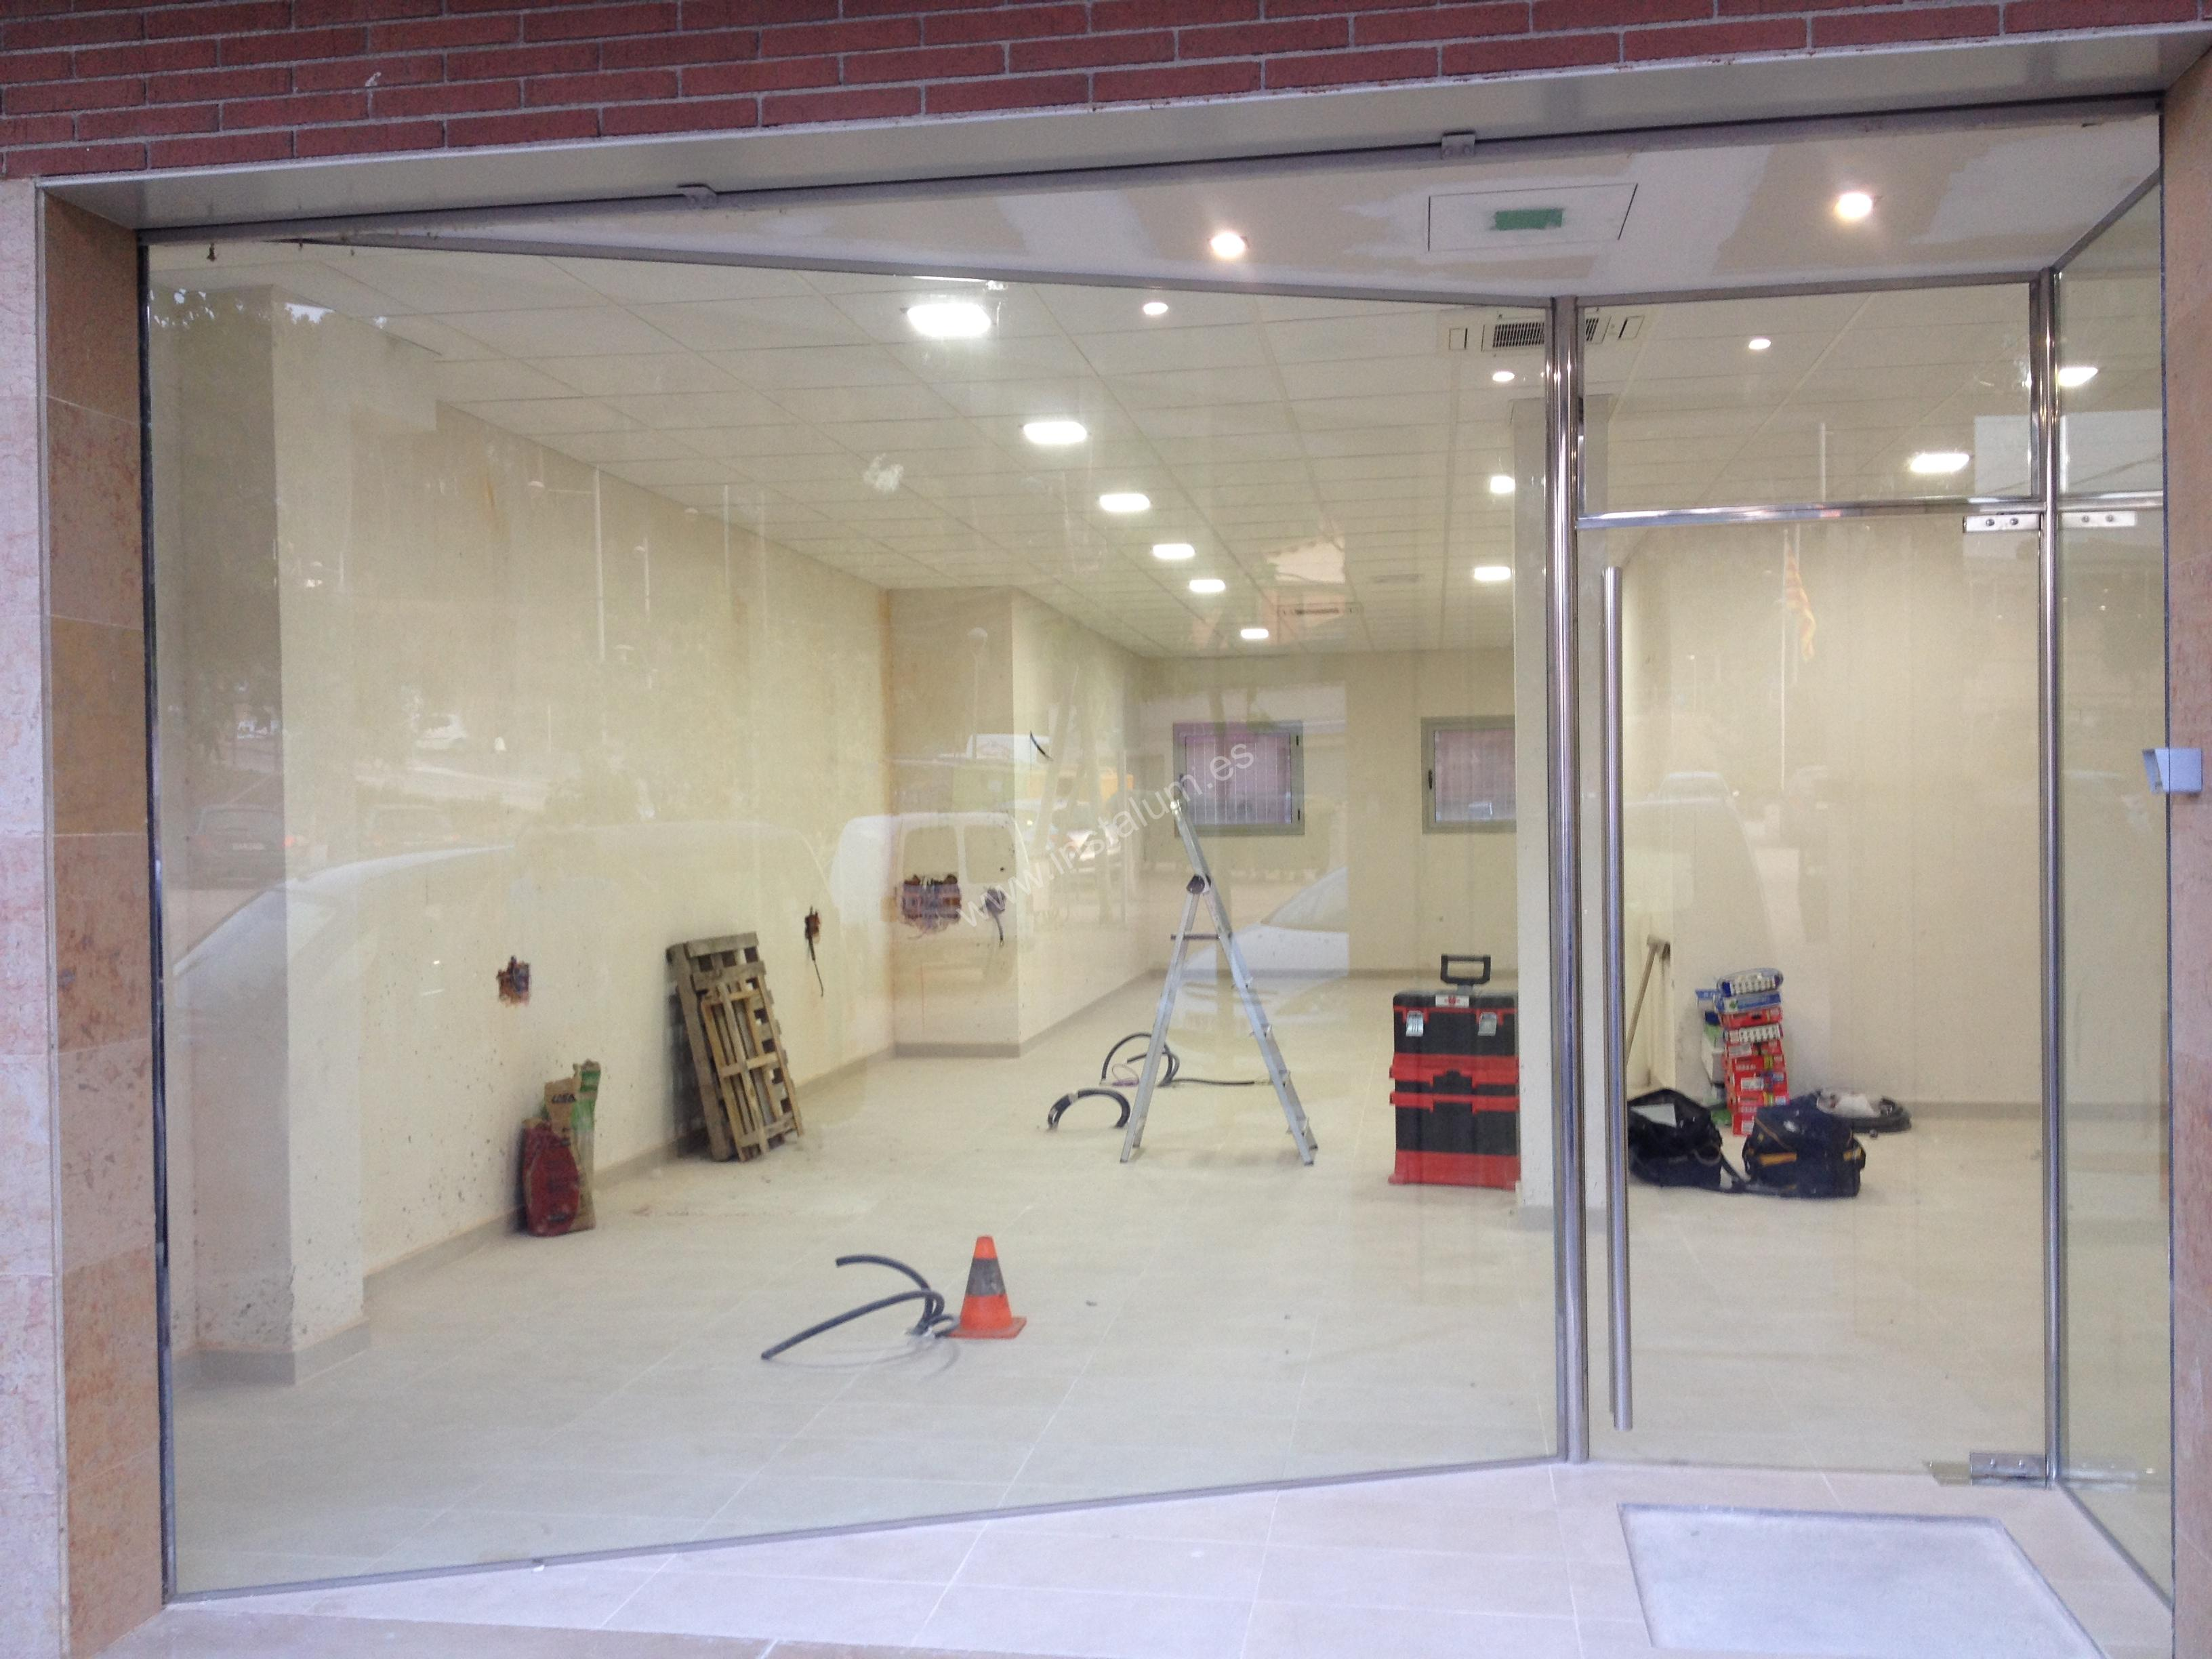 Cortinas Cristal Escaparate Y Puerta Vidur Local Comercial | Carpinteria De